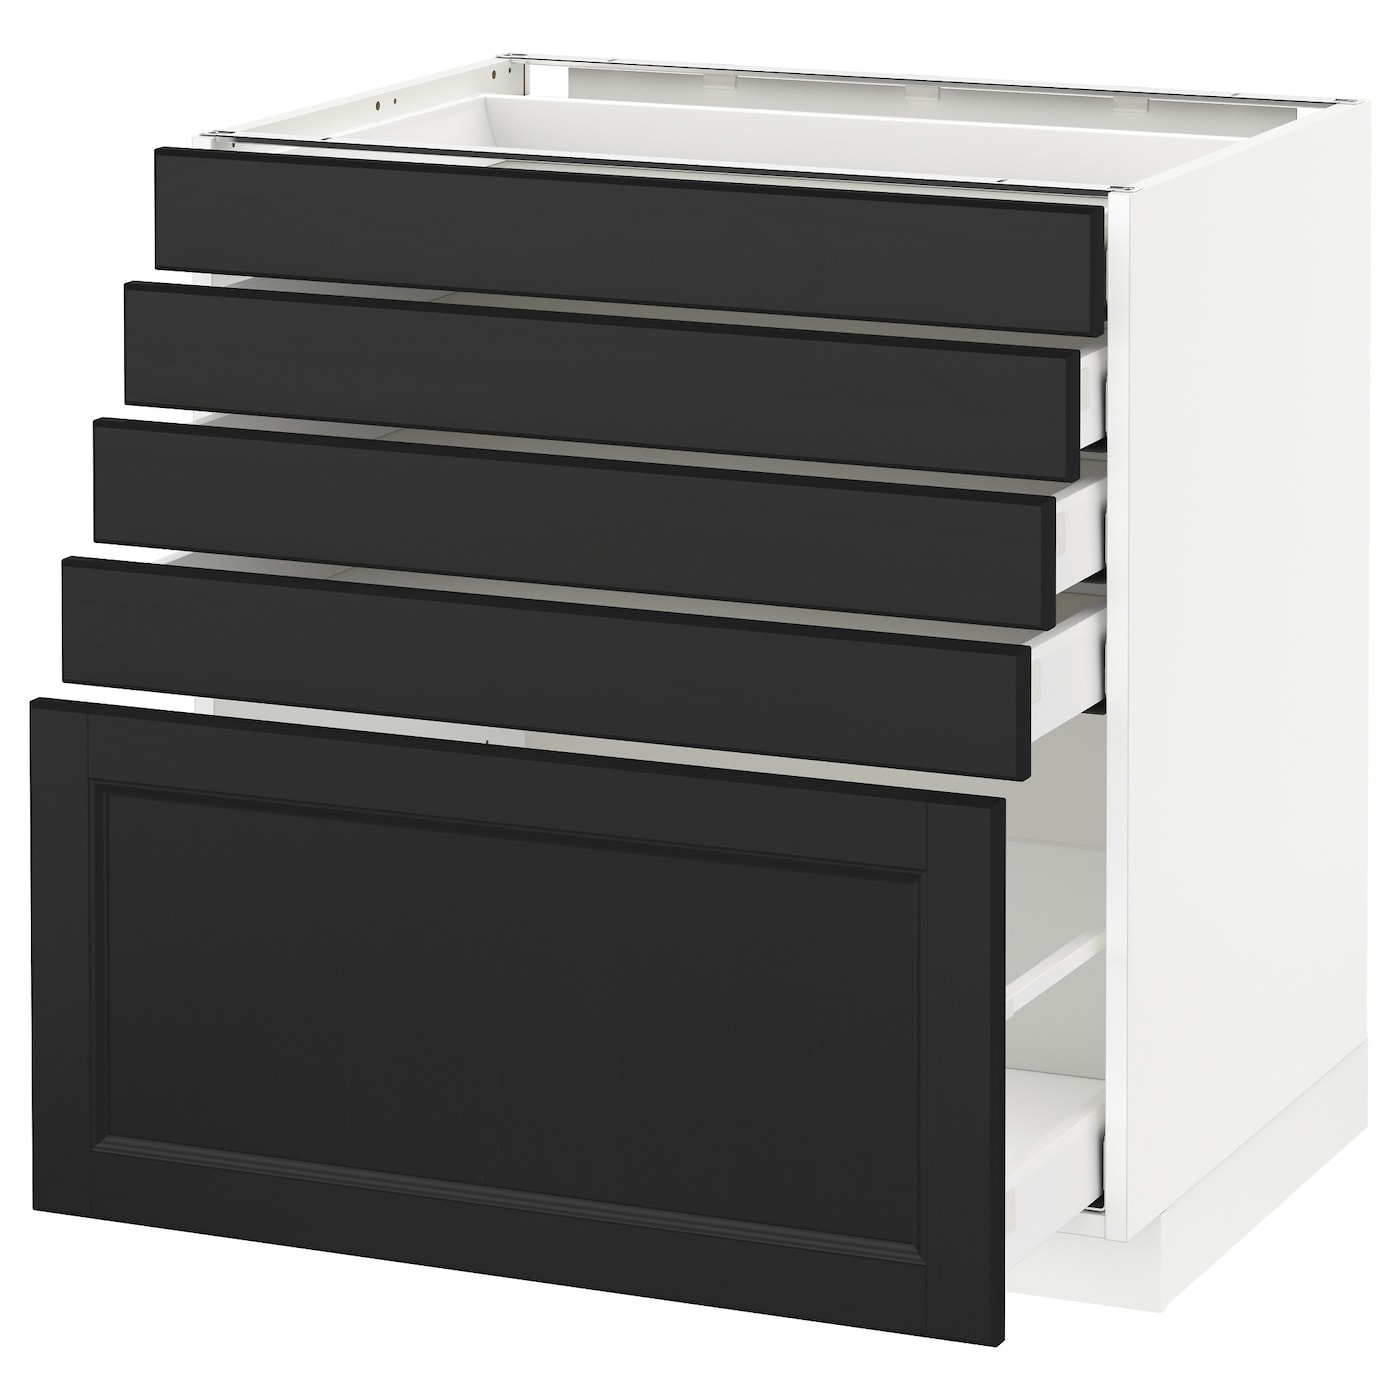 metod maximera base cabinet with 5 drawers white laxarby black brown 80x60 cm ikea. Black Bedroom Furniture Sets. Home Design Ideas